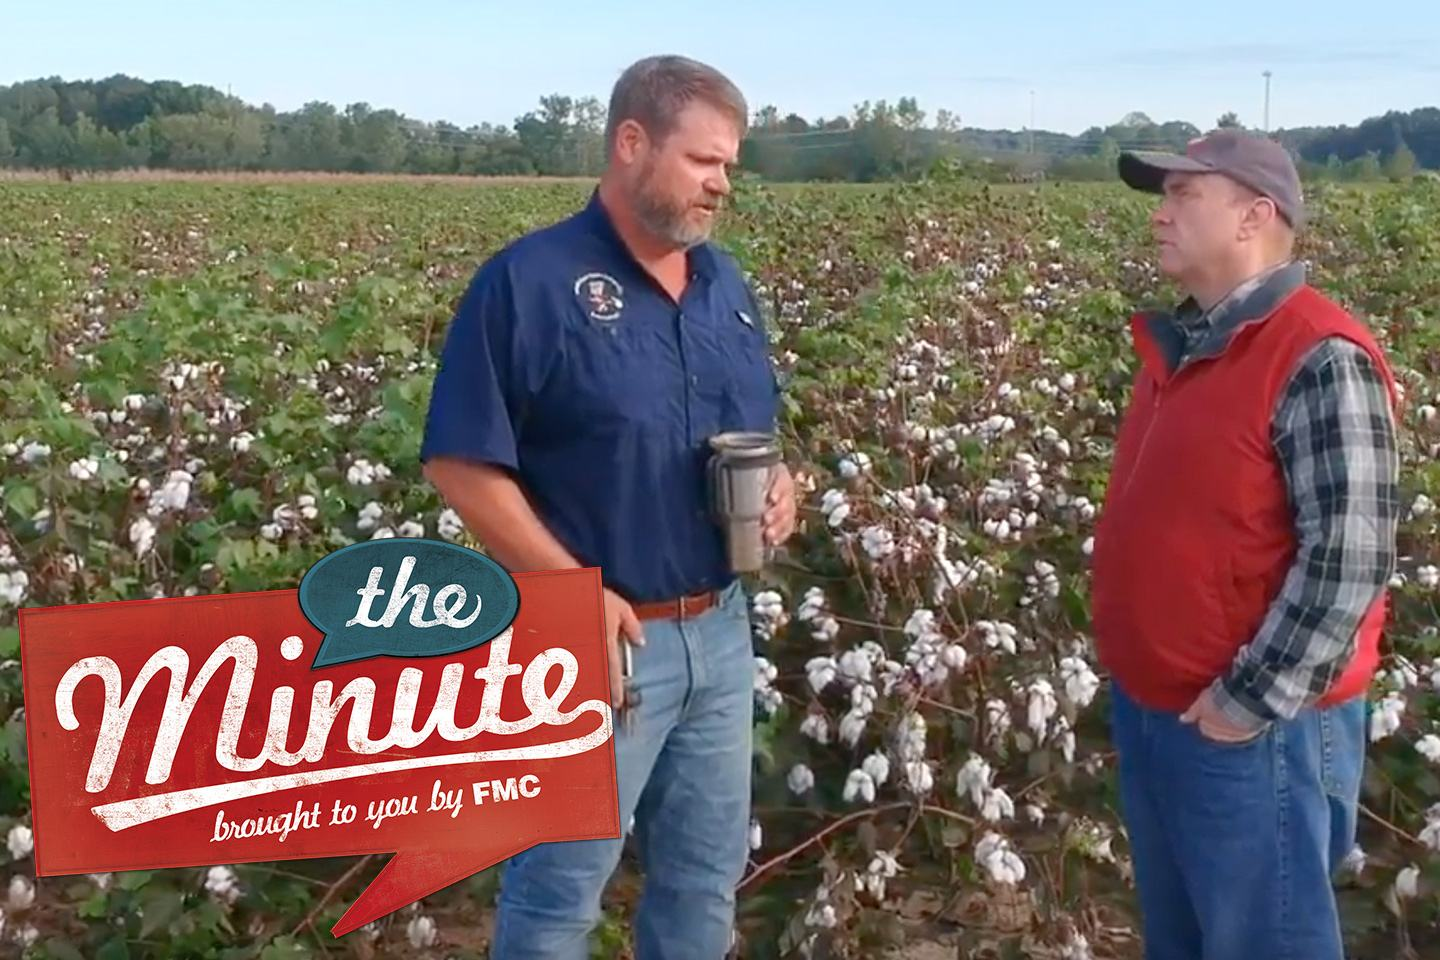 Two people interviewing in cotton field